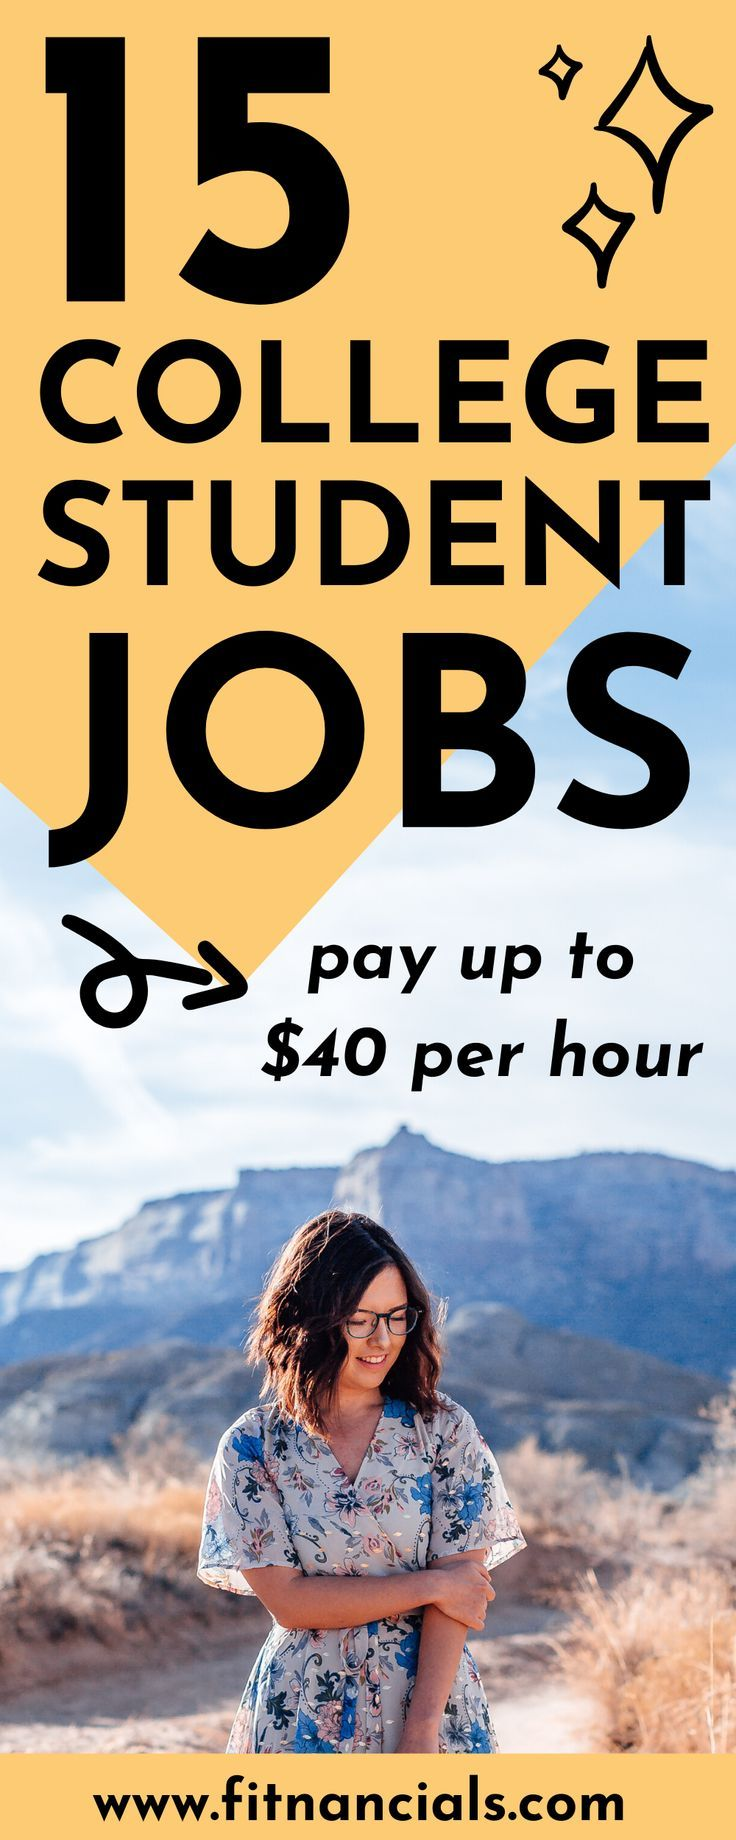 Want to make extra money in college? Check out this list of college student jobs that earn up to $40 per hour. #college #student #makemoney #money